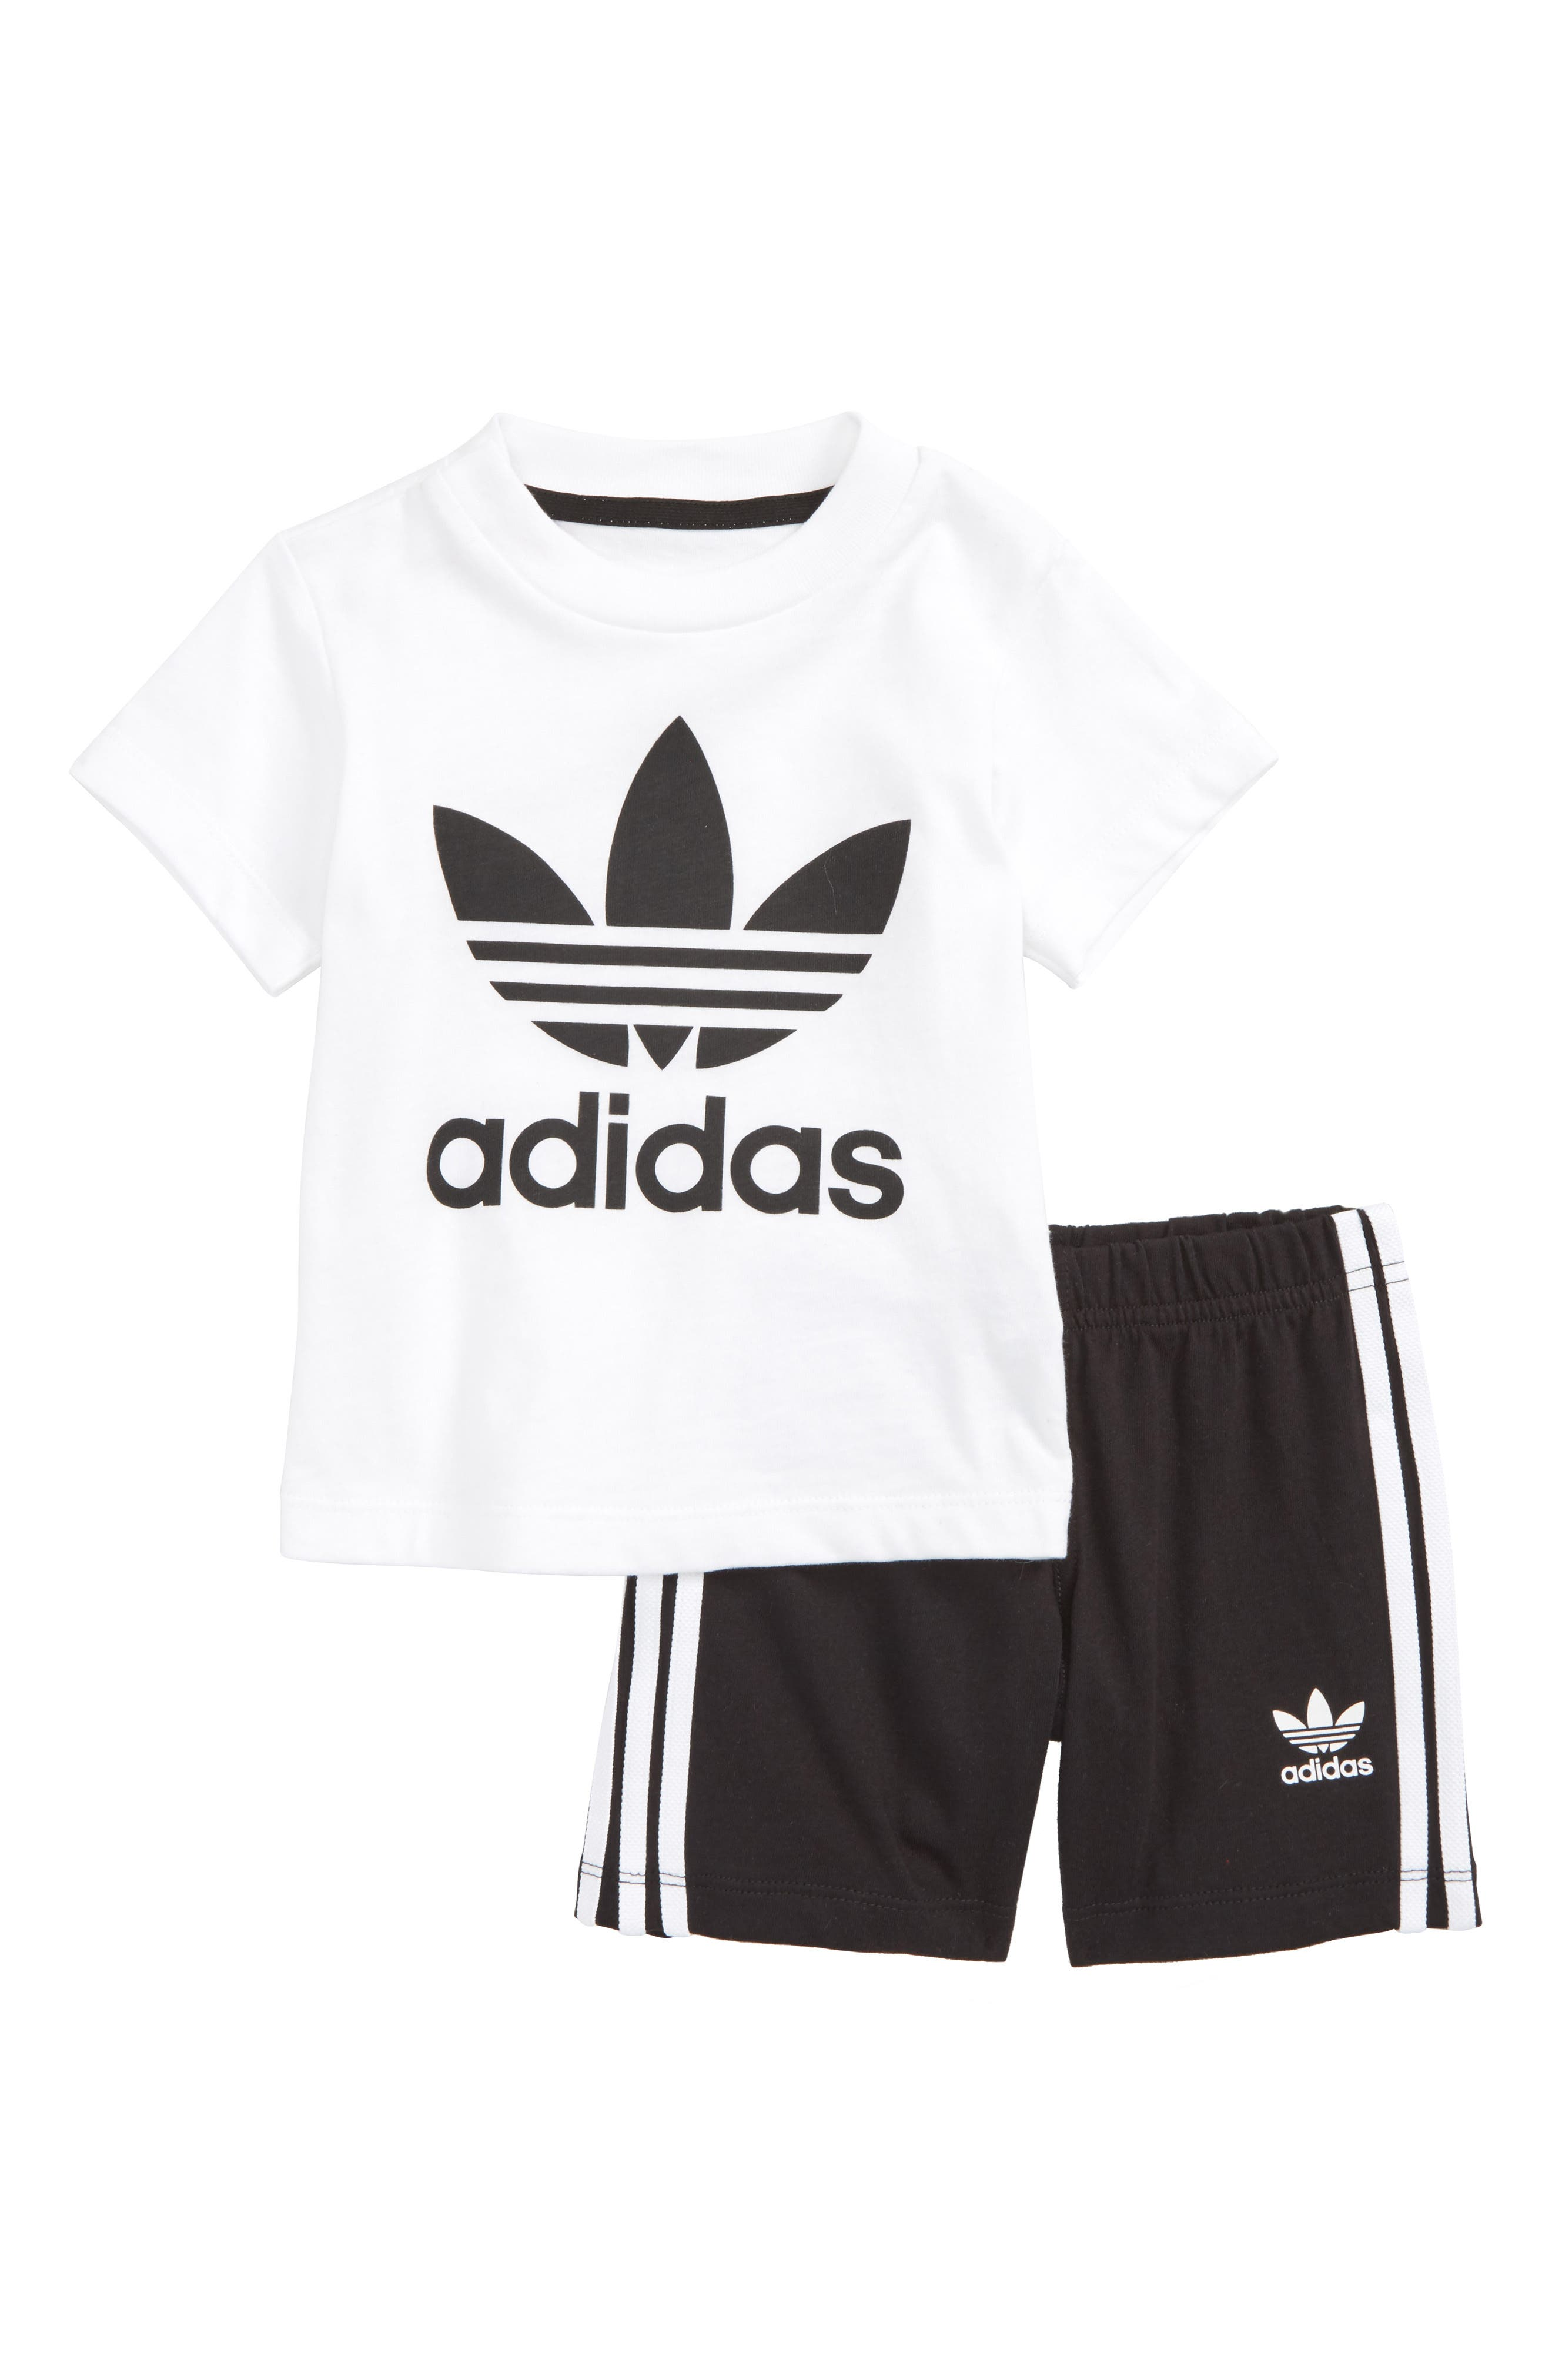 Originals Graphic T Shirt & Shorts Set by Adidas